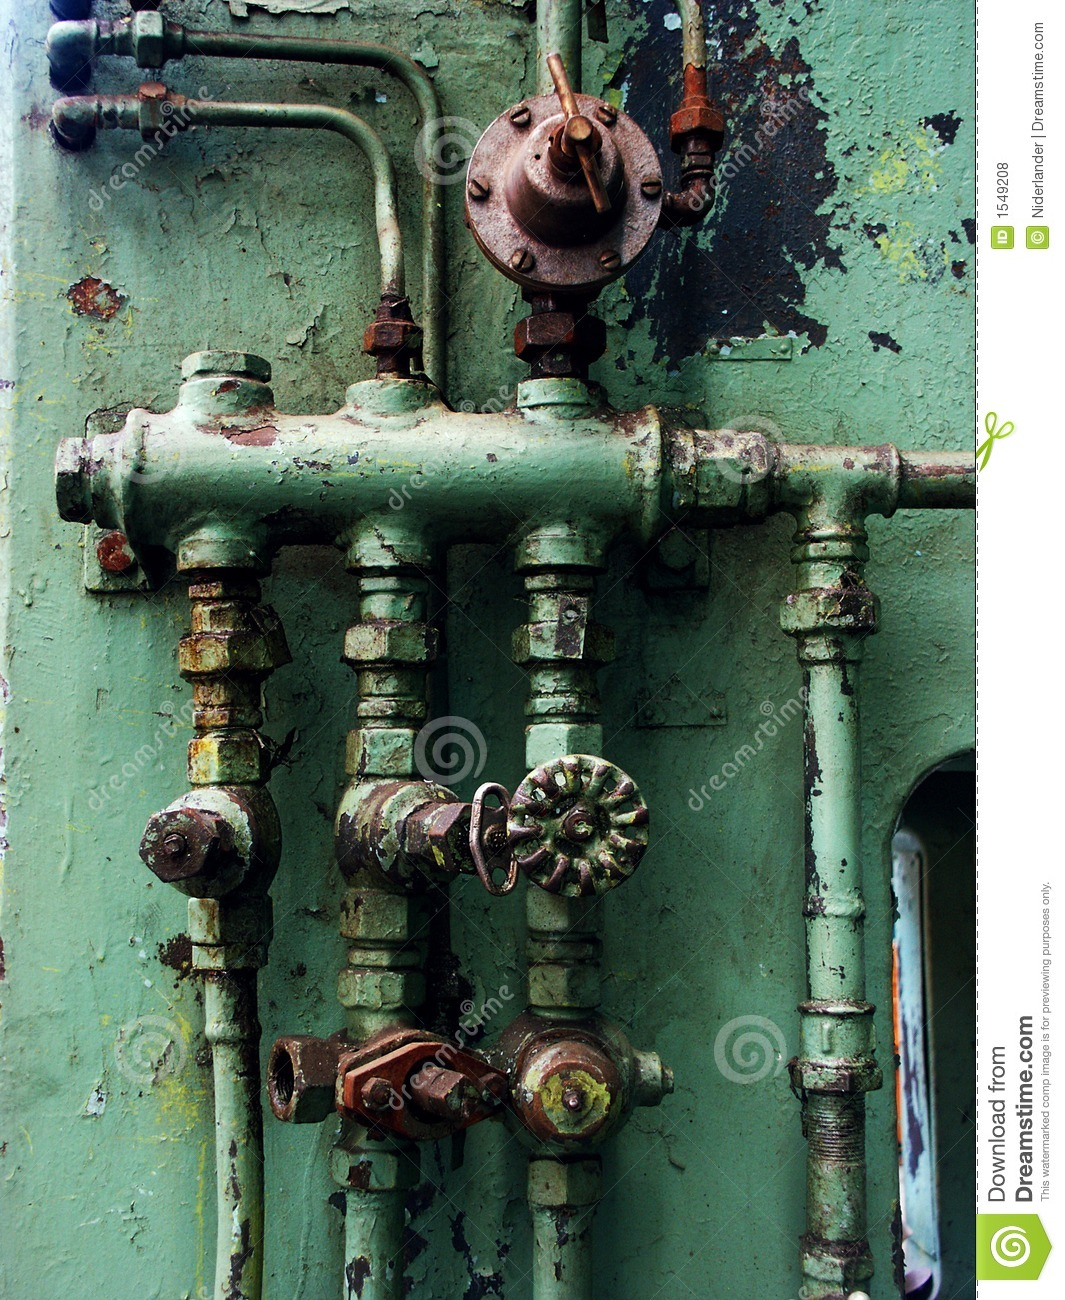 Rusty pipes and valves stock photo image of plumber for What are old plumbing pipes made of